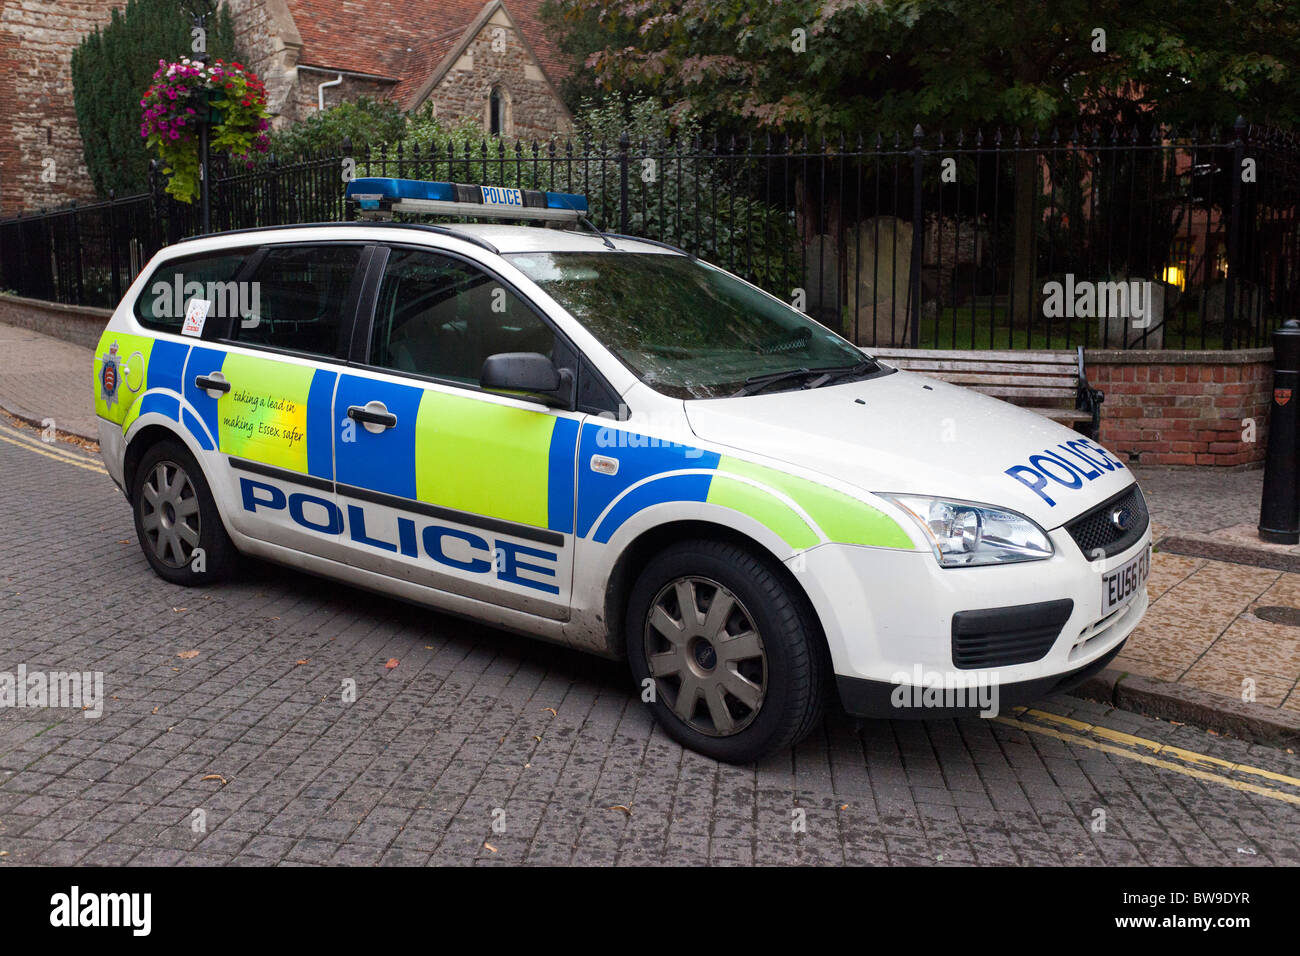 police car parked in a street, UK - Stock Image